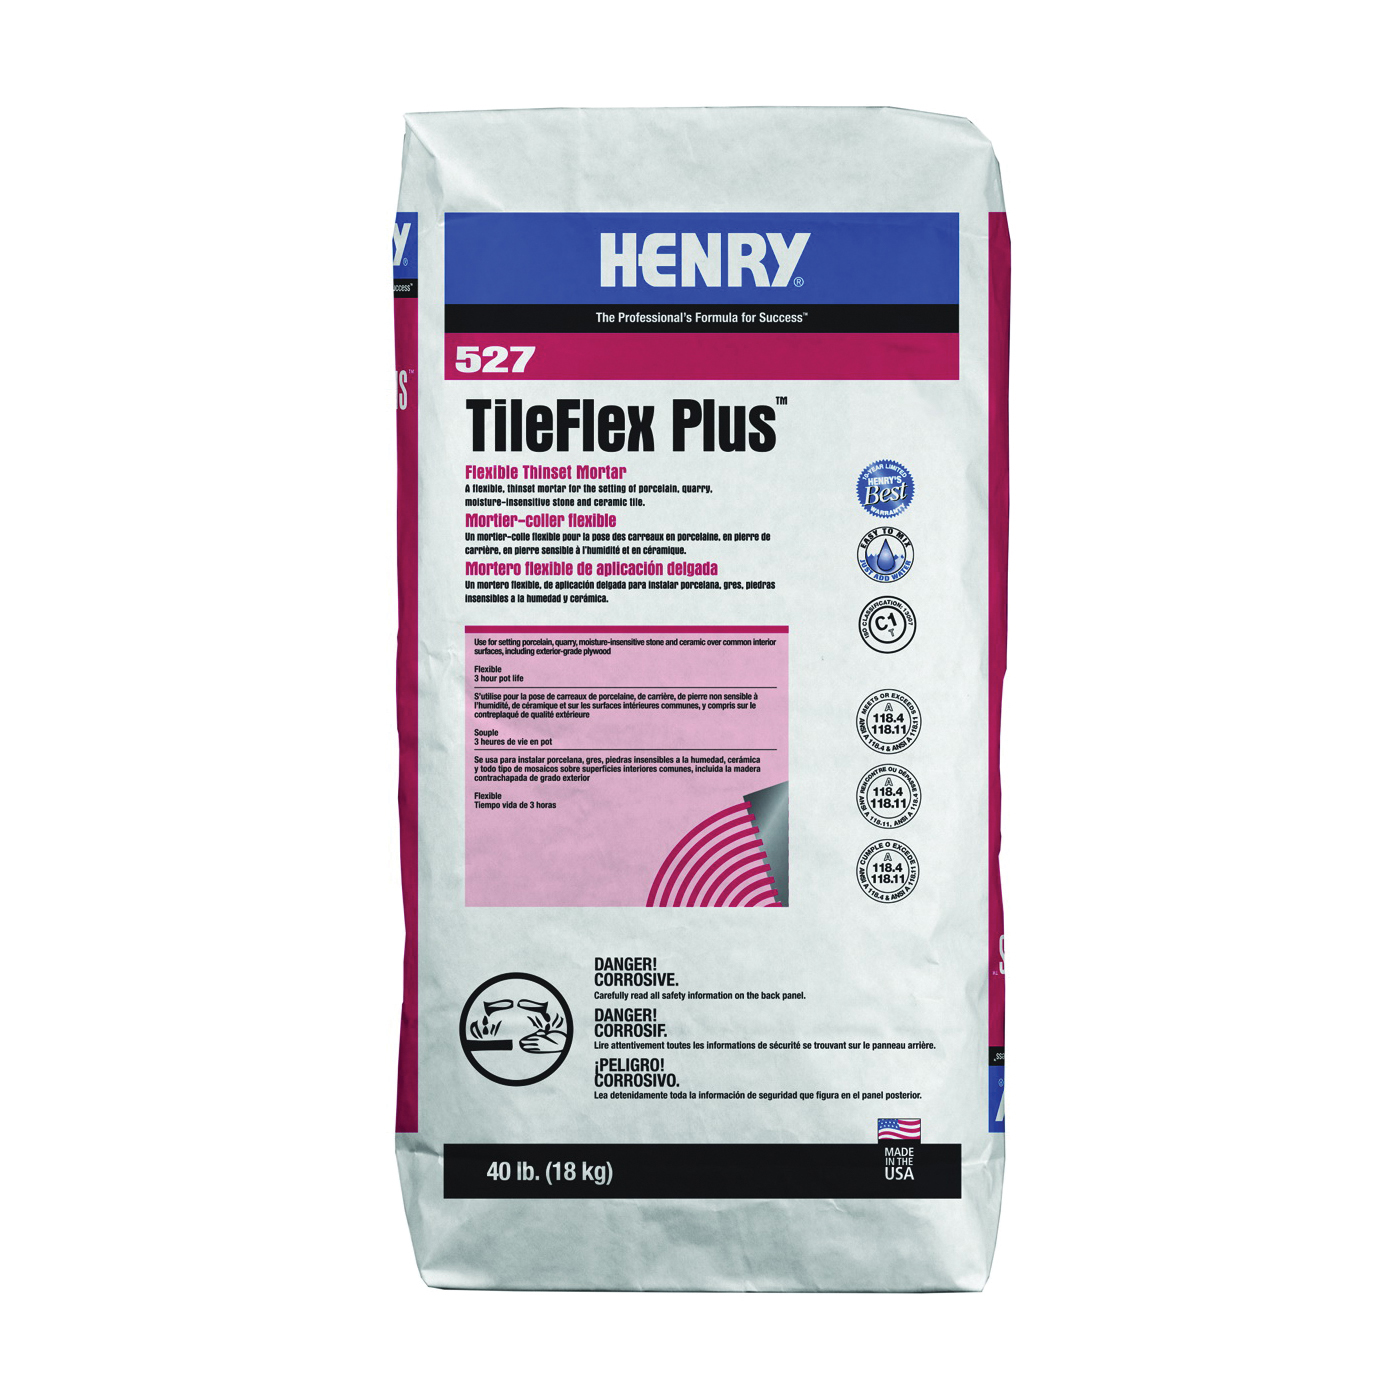 Picture of HENRY 527 TileFlex Plus Series 13080 Thin-Set Mortar, Gray, Fine Solid Powder, 40 lb Package, Bag